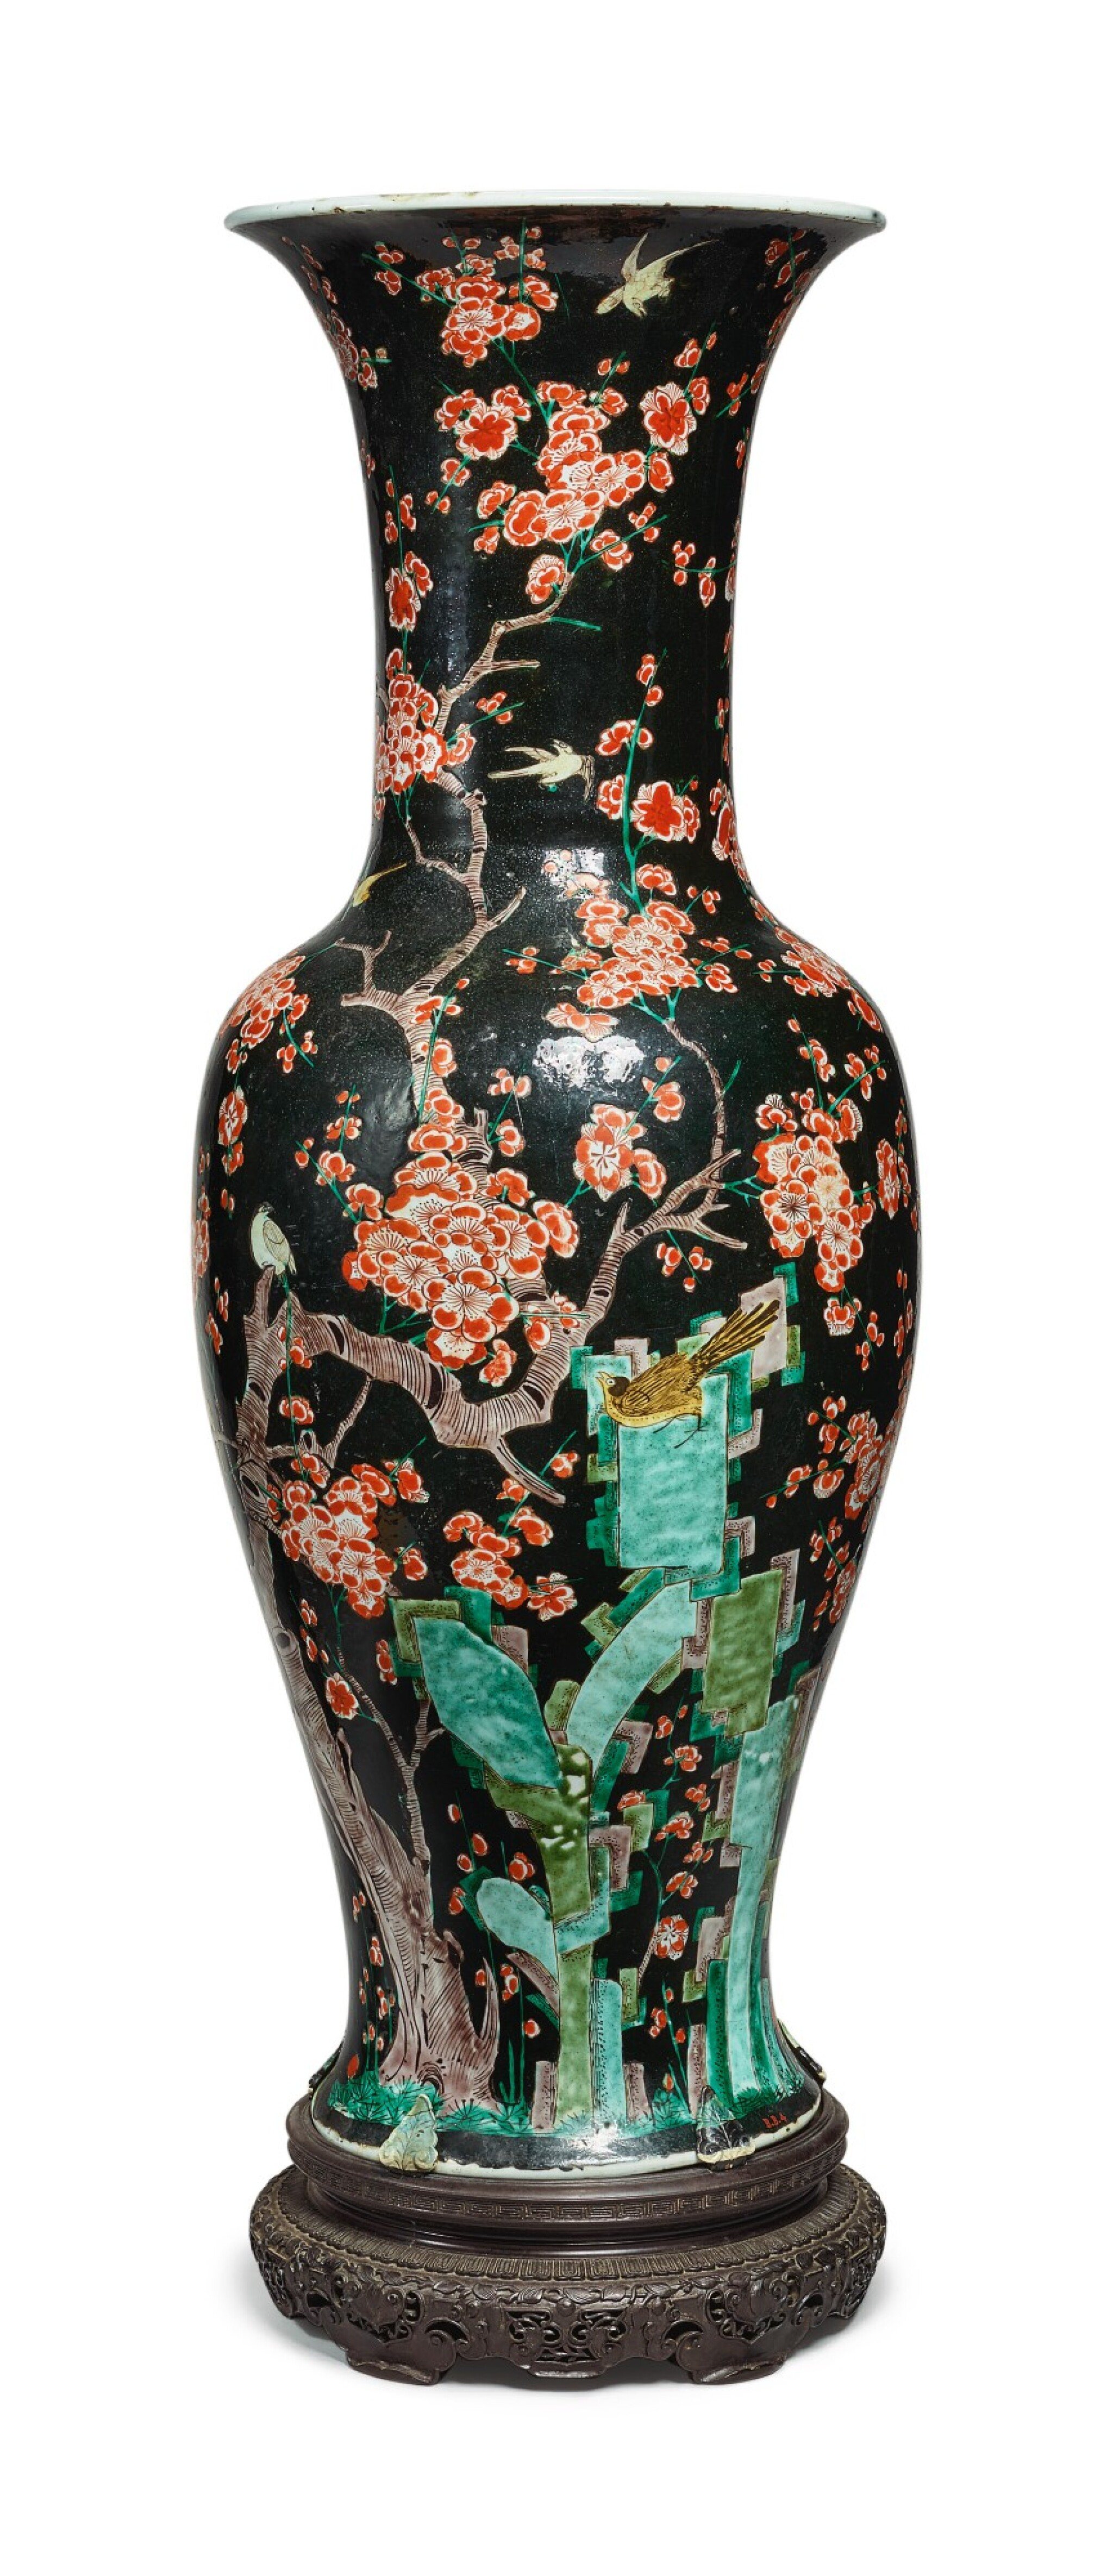 View 1 of Lot 1037. A LARGE FAMILLE-NOIRE 'MAGPIE AND PRUNUS' YENYEN VASE, THE PORCELAIN 18TH CENTURY, THE ENAMELS LATER-ADDED.